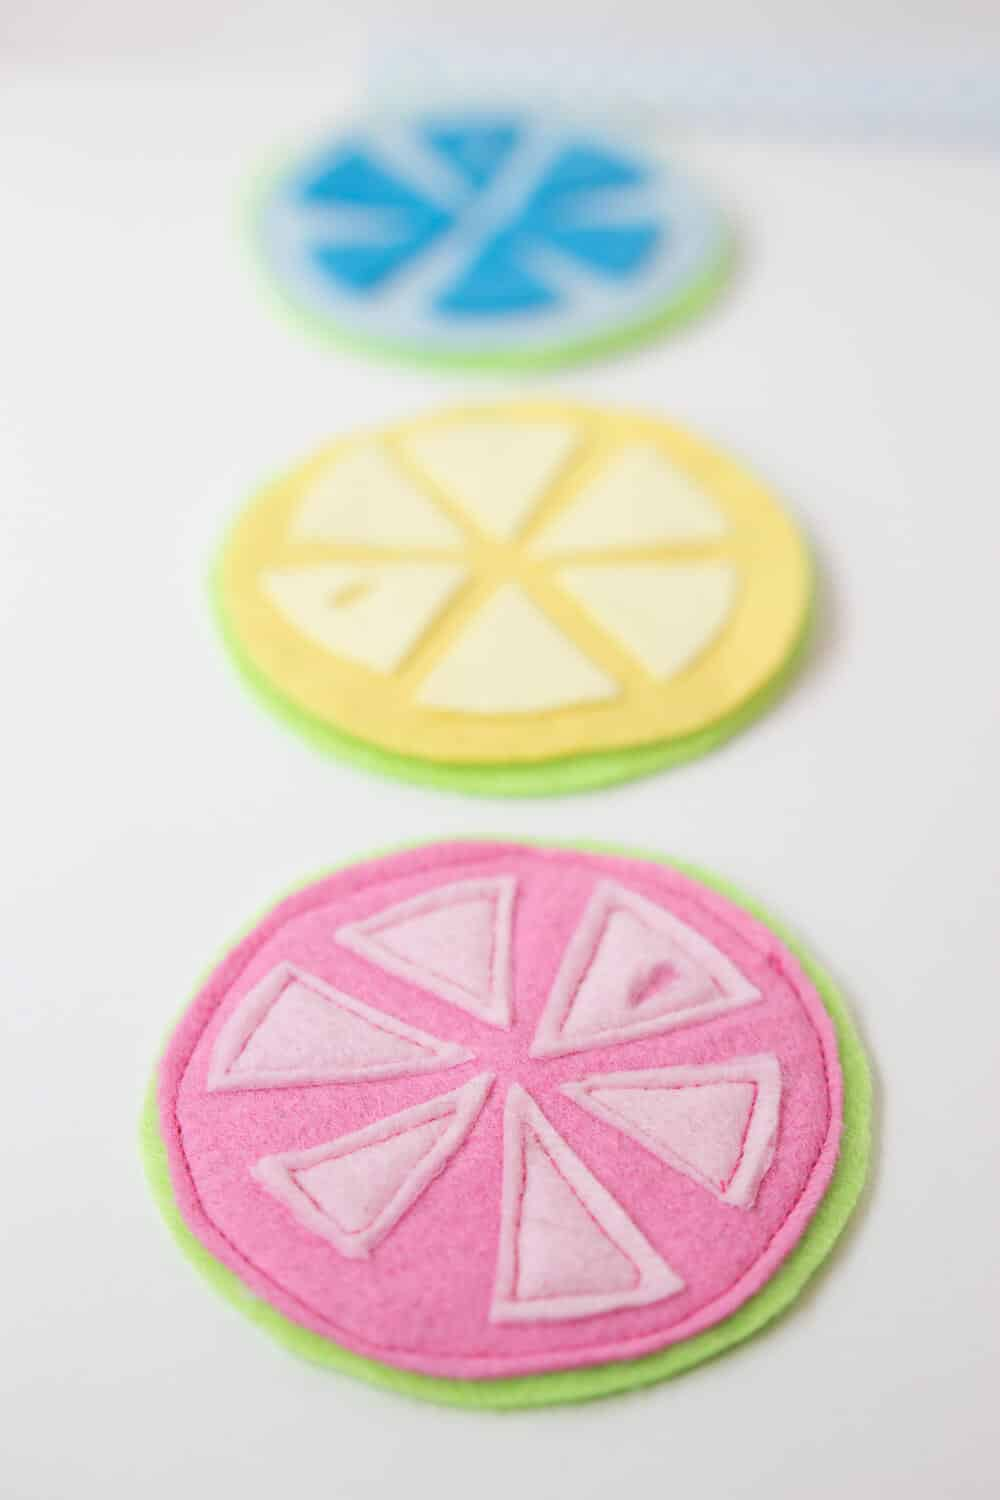 Citrus Coasters - lined up, ready to use!